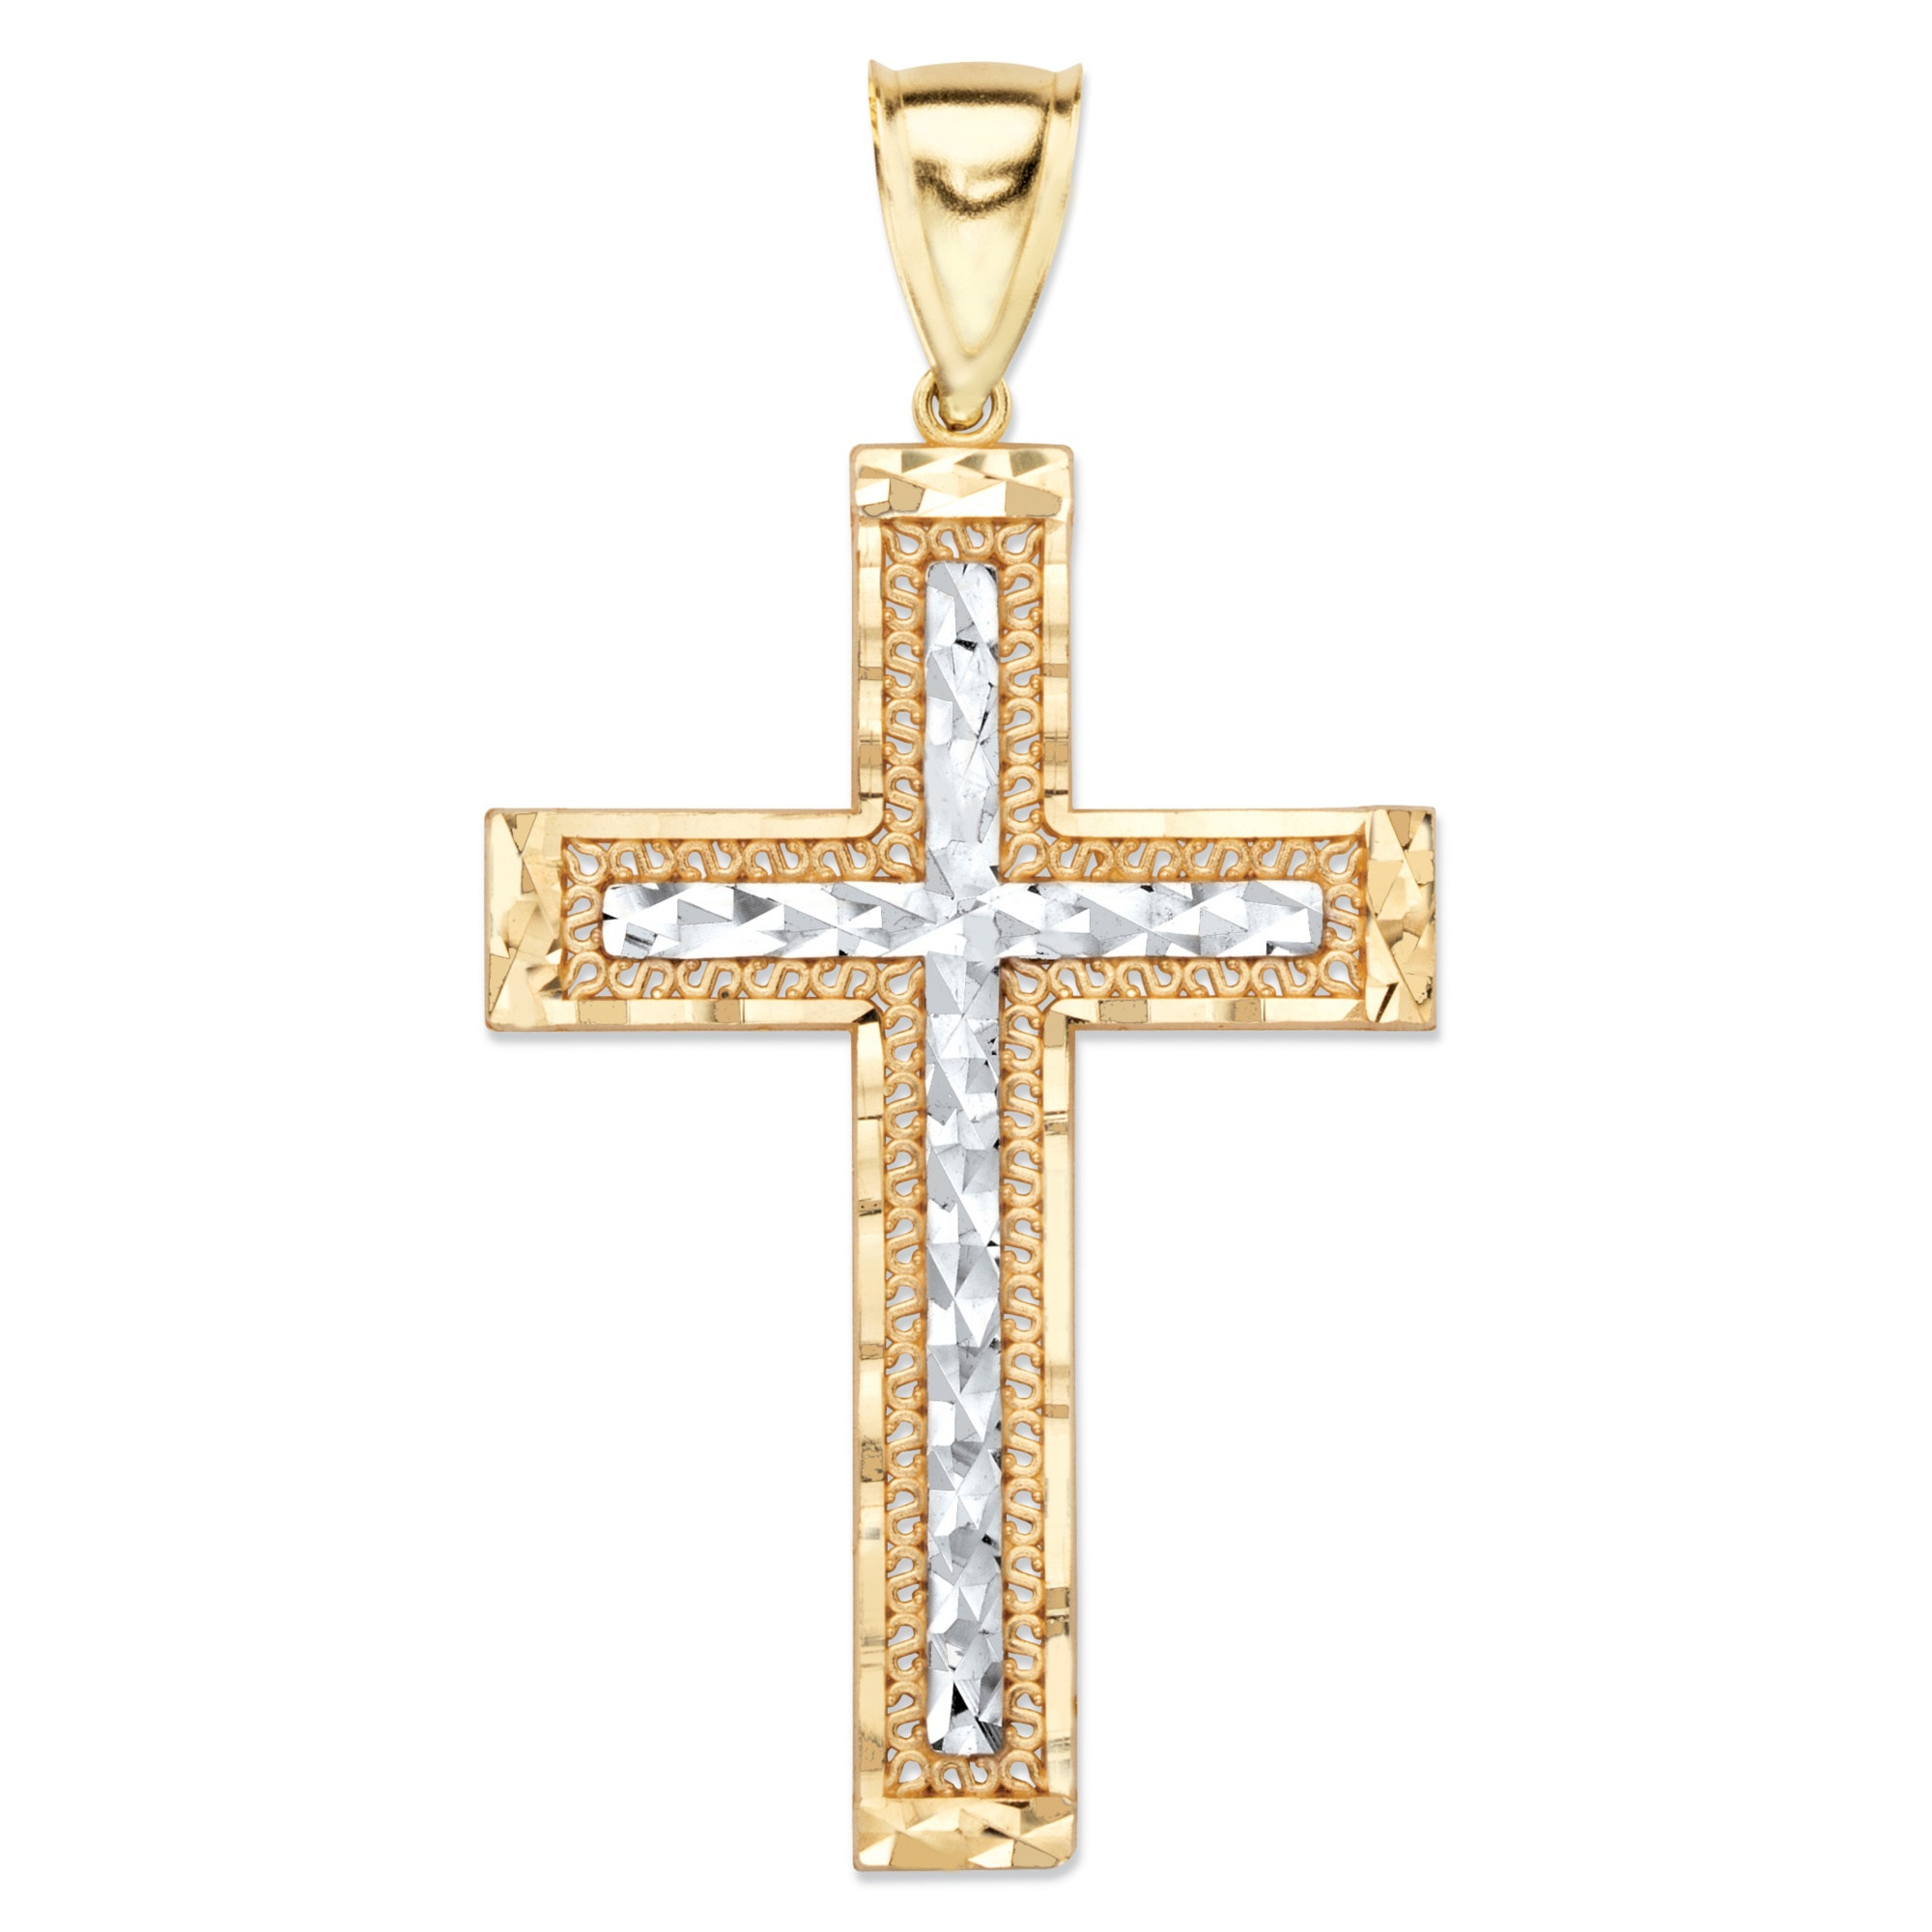 products tone palmbeach jewelry rings diamond charm cross at yellow cfm in crucifix two white and pendant gold detail cut